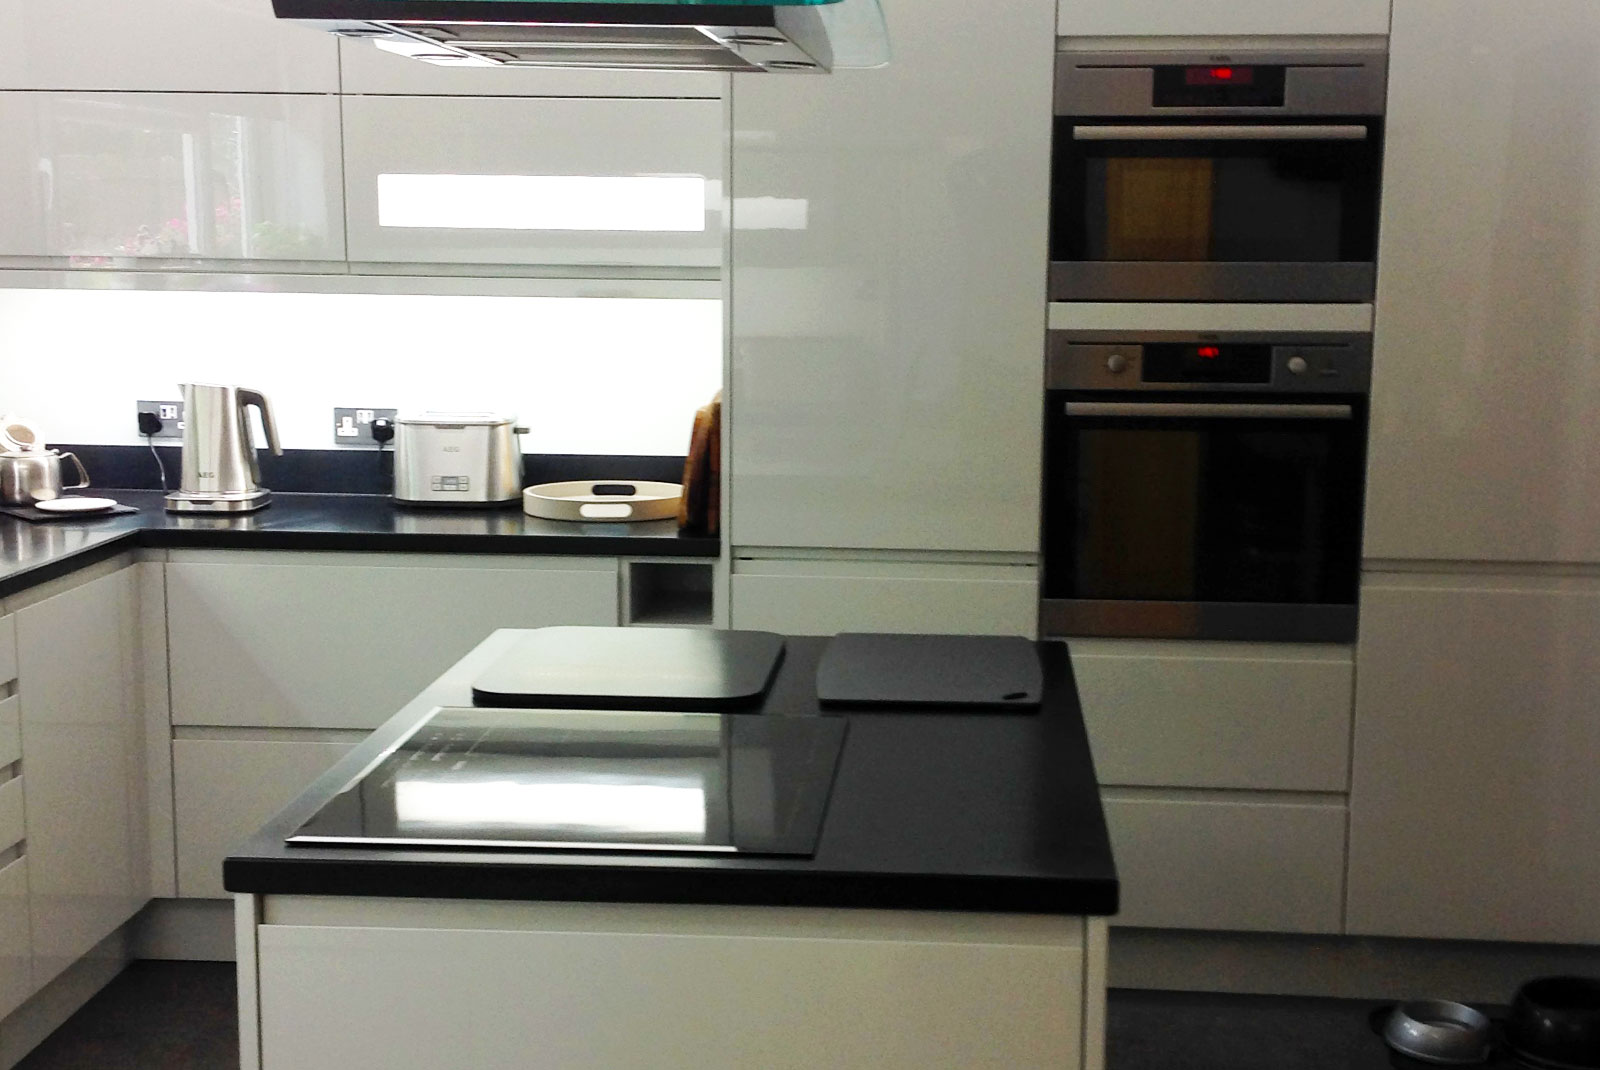 Rosemary from kent finished kitchen from diy kitchens for Diy kitchens com reviews